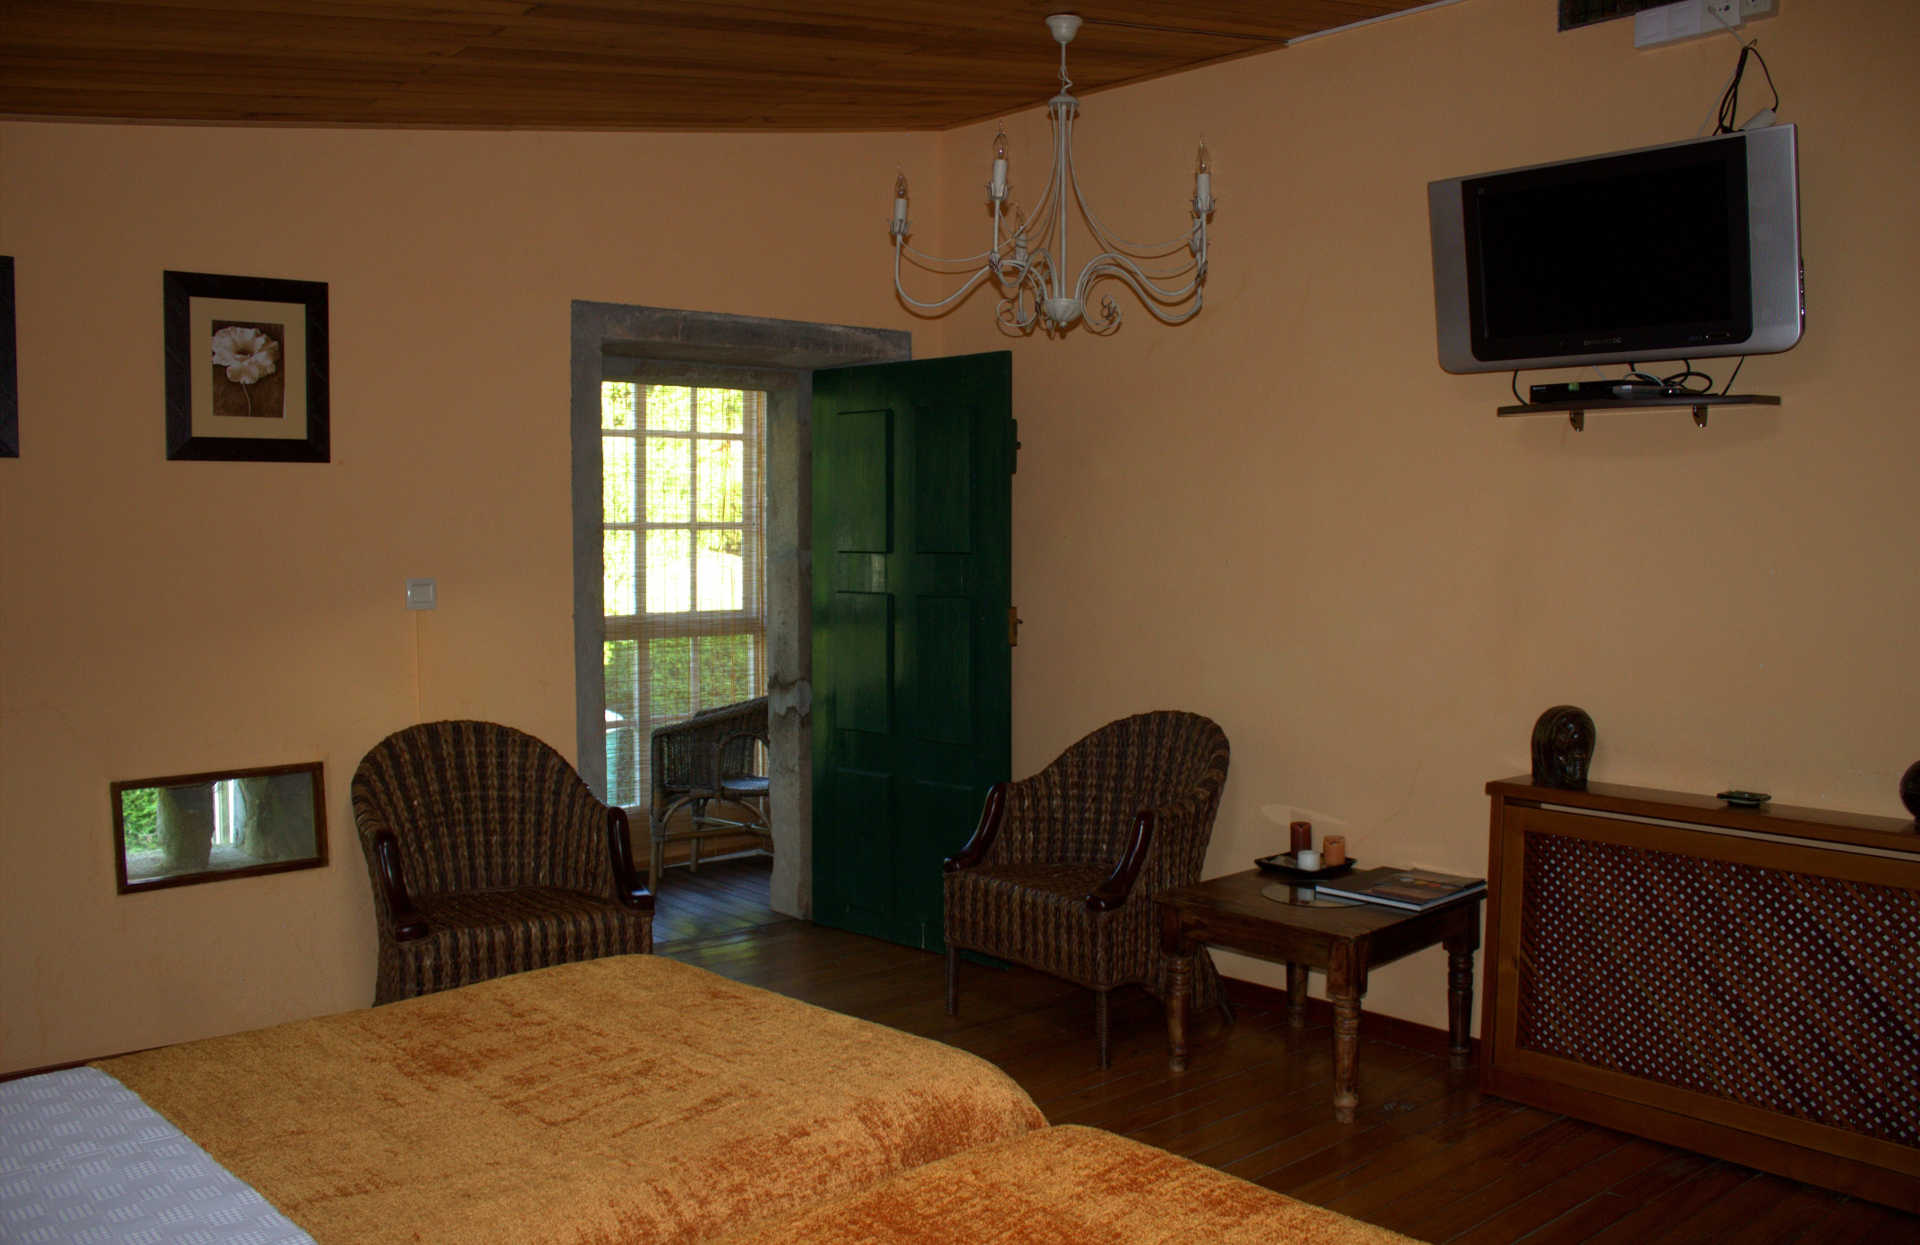 Habitacion doble Outeiro con Galeria casa rural As Seis Chemineas